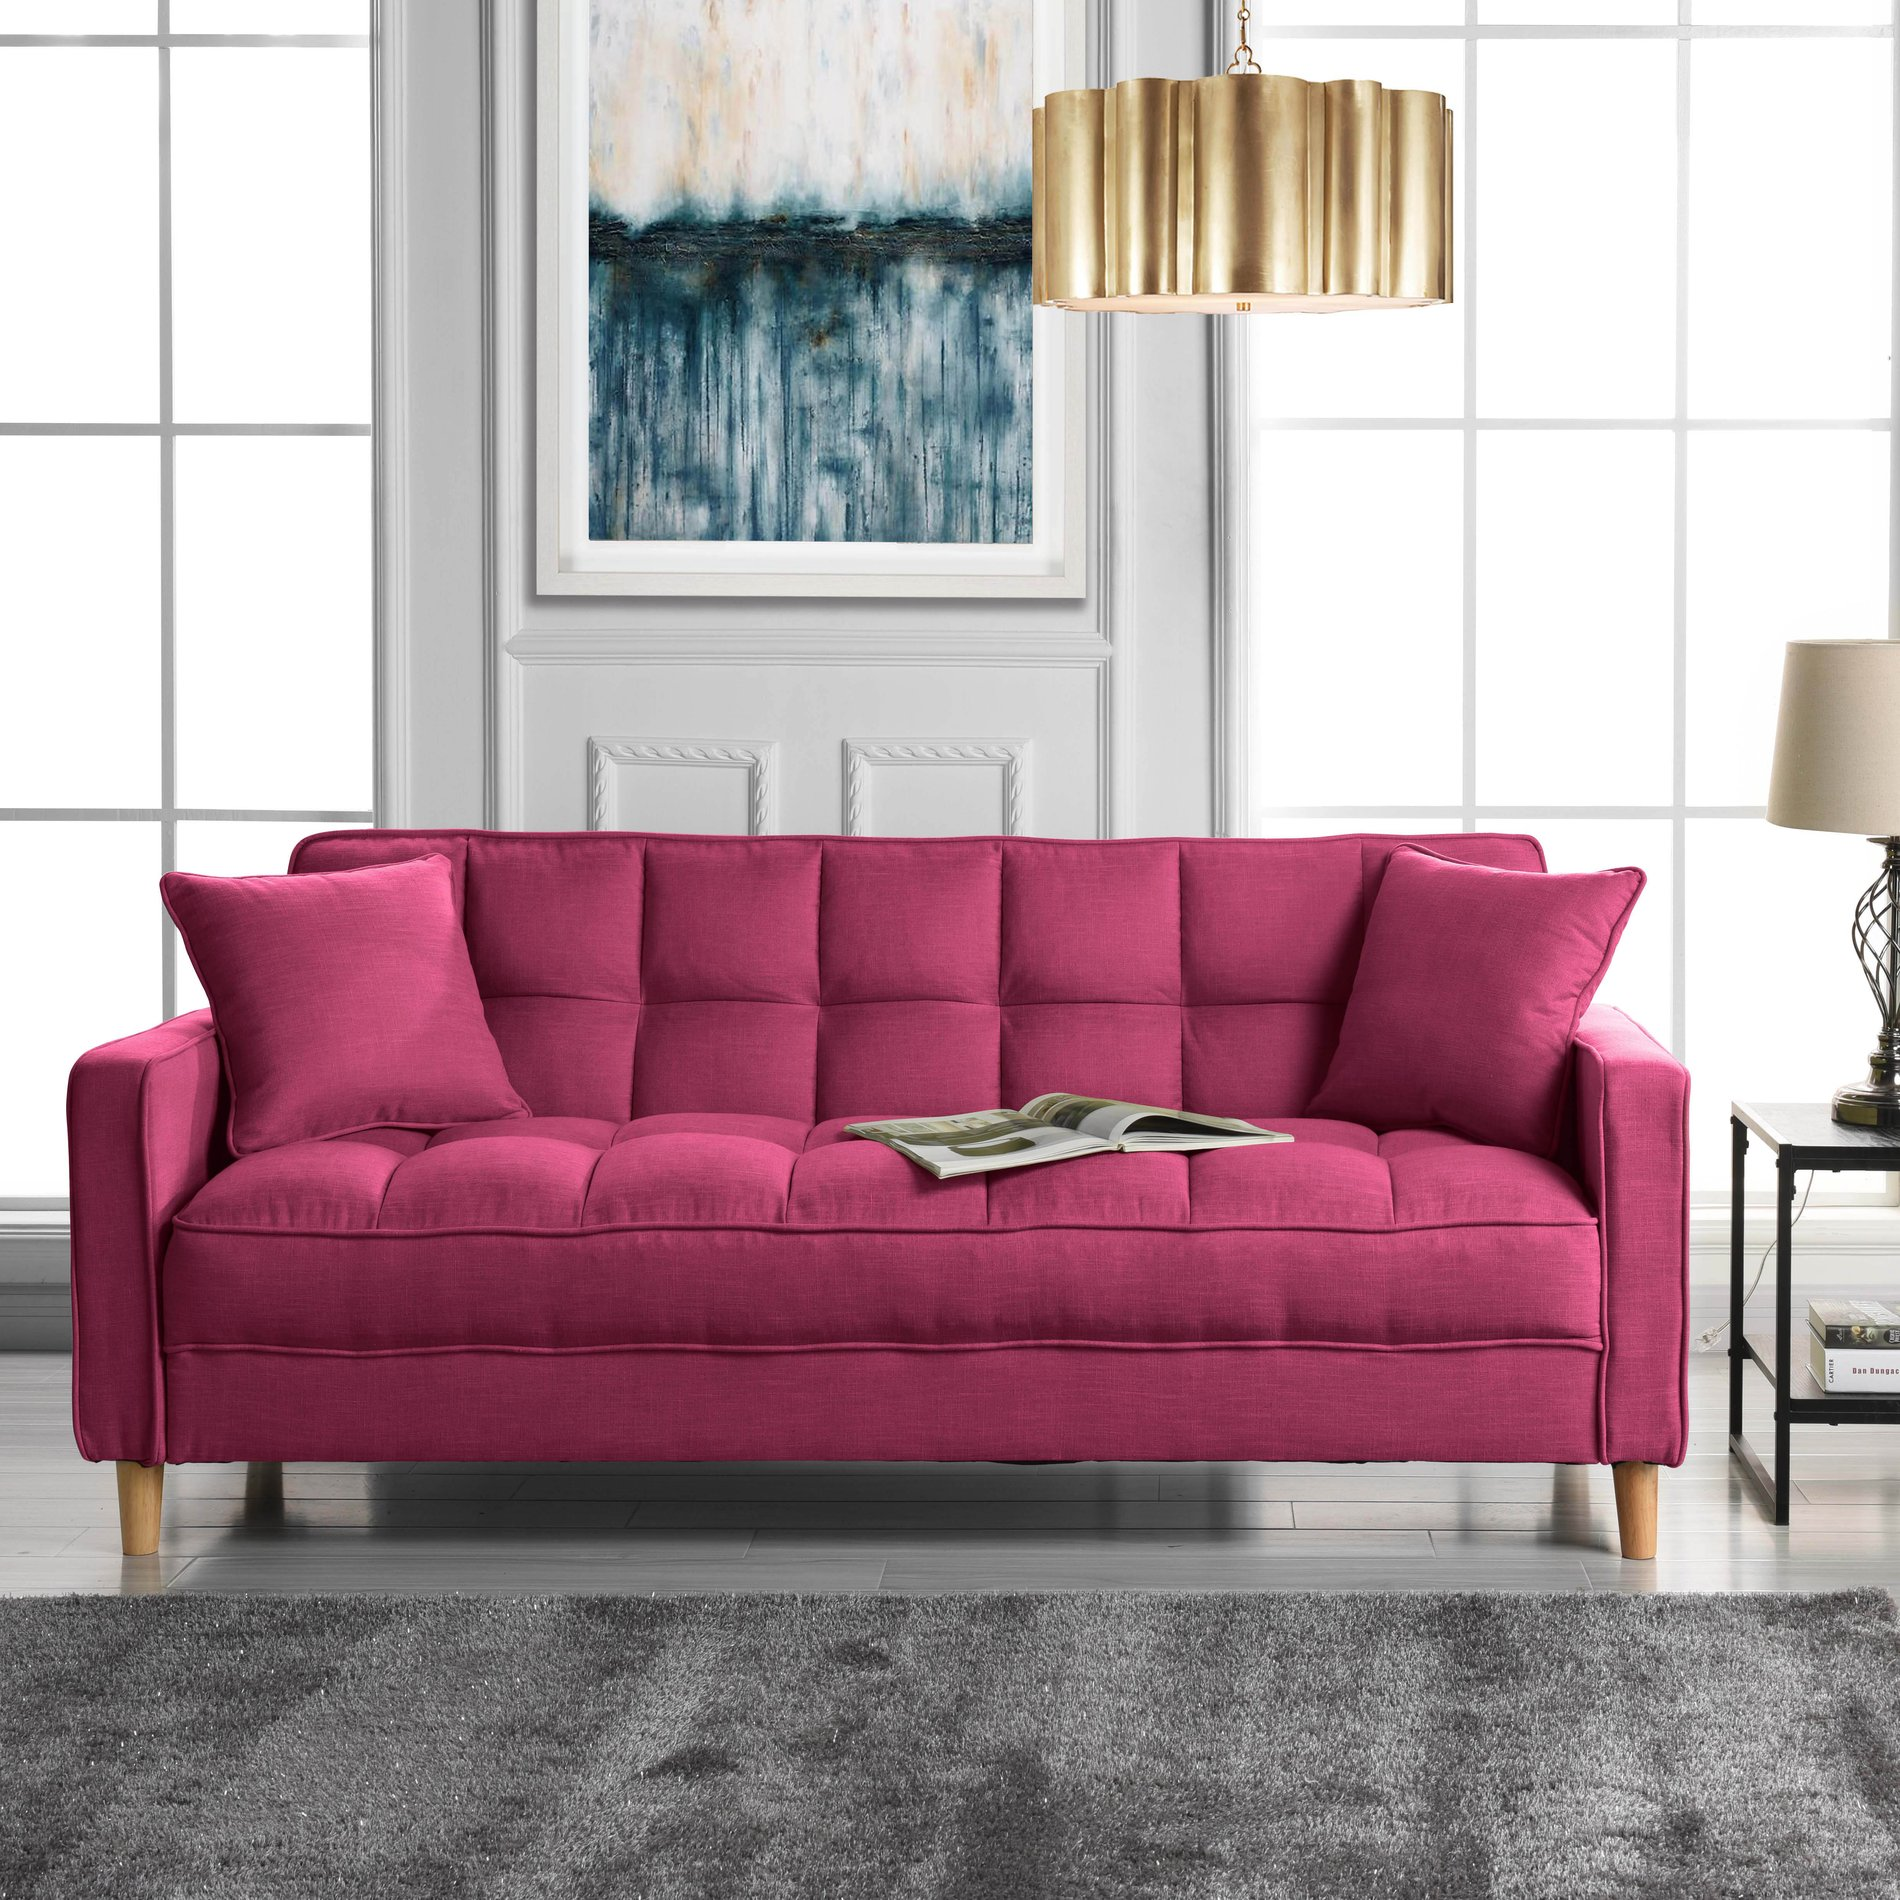 Details about modern linen fabric tufted small space living room sofa couch hot pink